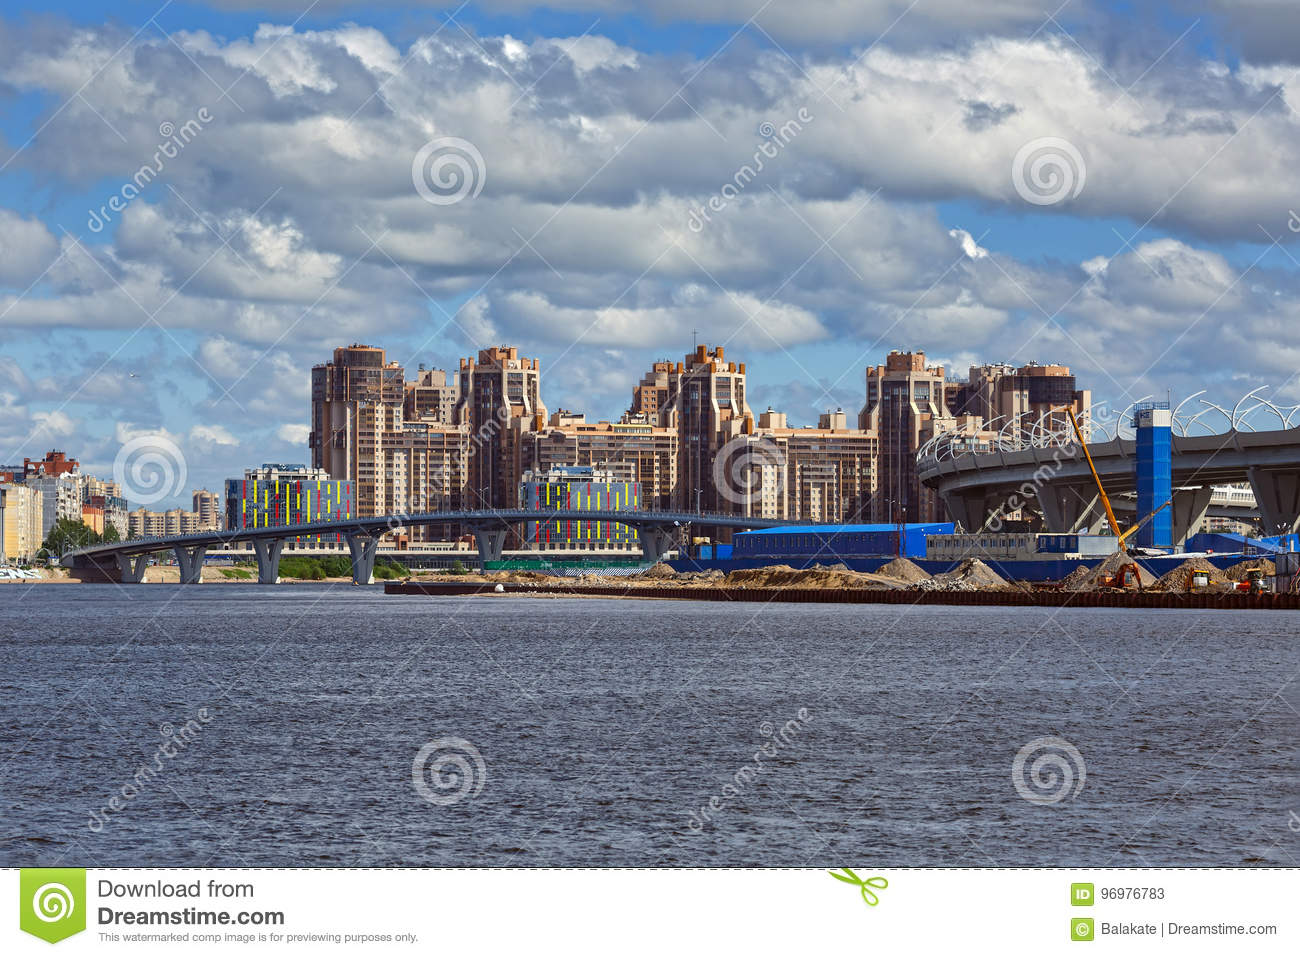 View of the new districts of Saint Petersbug, Russia